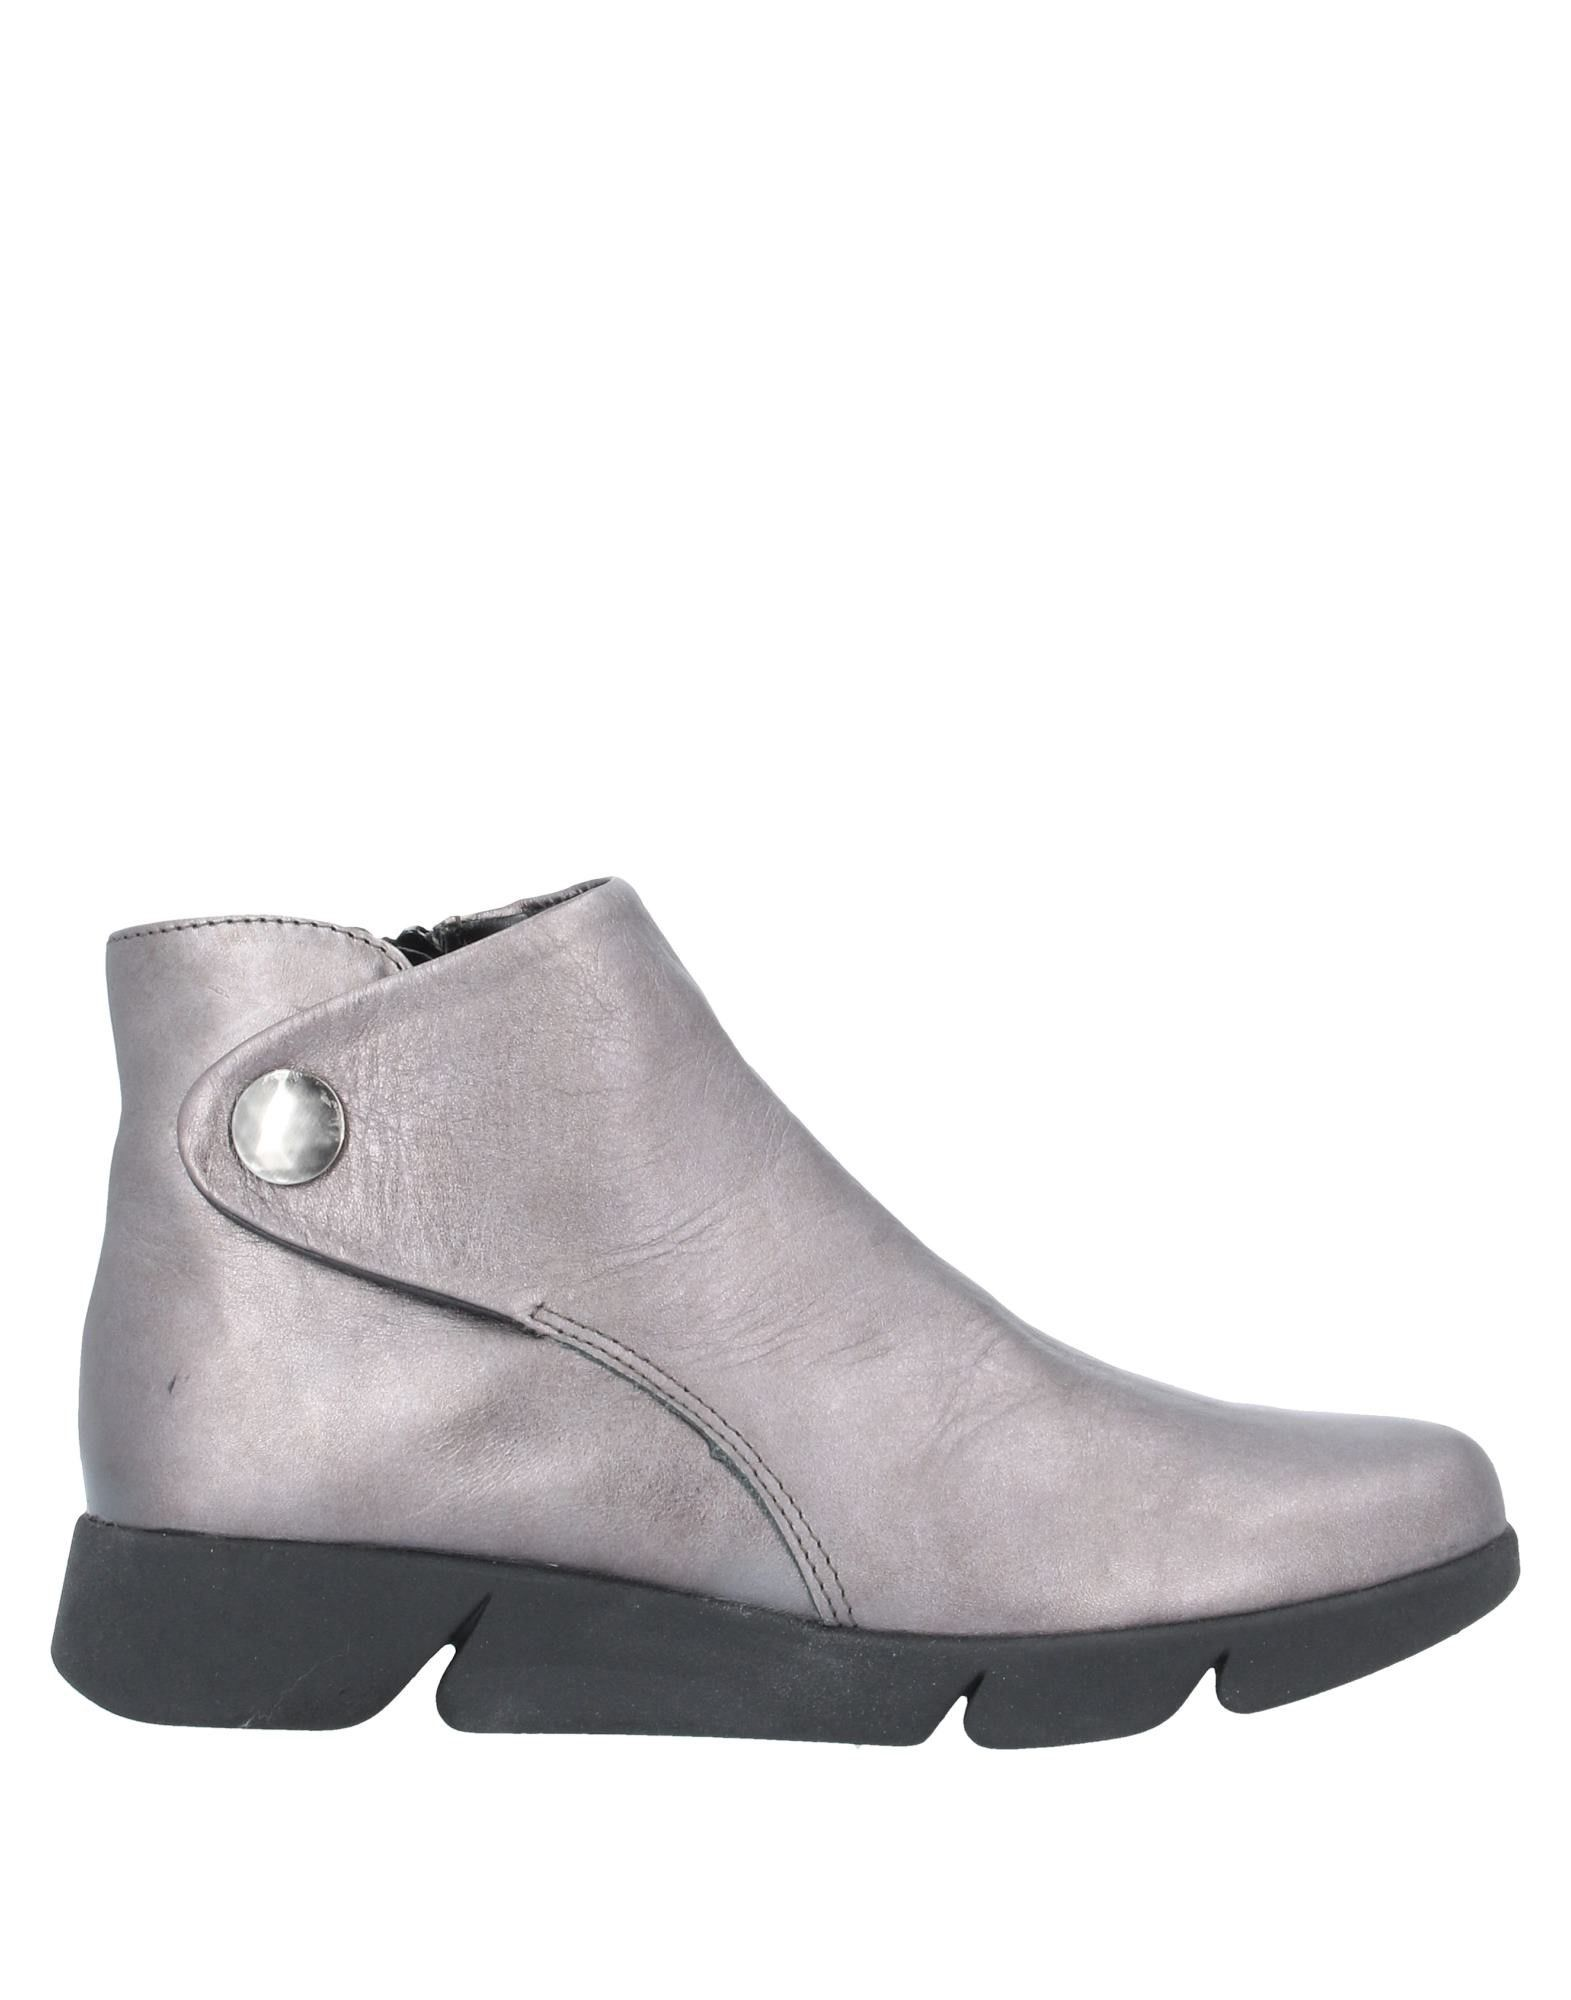 THE FLEXX Ankle boots. leather, laminated effect, no appliqués, solid color, zipper closure, round toeline, wedge heel, rubber wedge, technical fabric inner, rubber cleated sole, contains non-textile parts of animal origin. Soft Leather